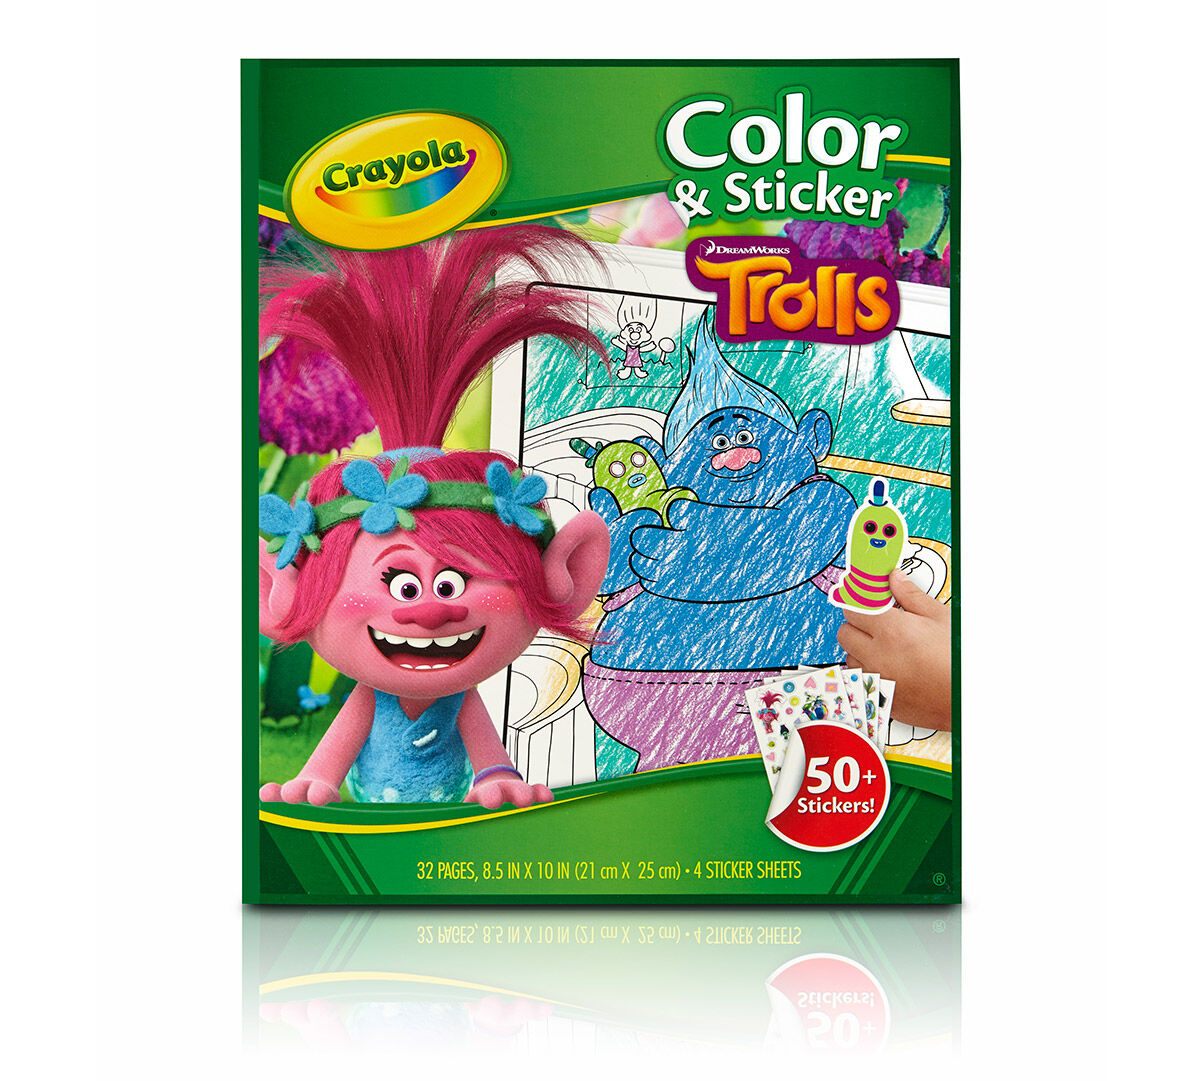 Trolls Color and Sticker Book | Crayola